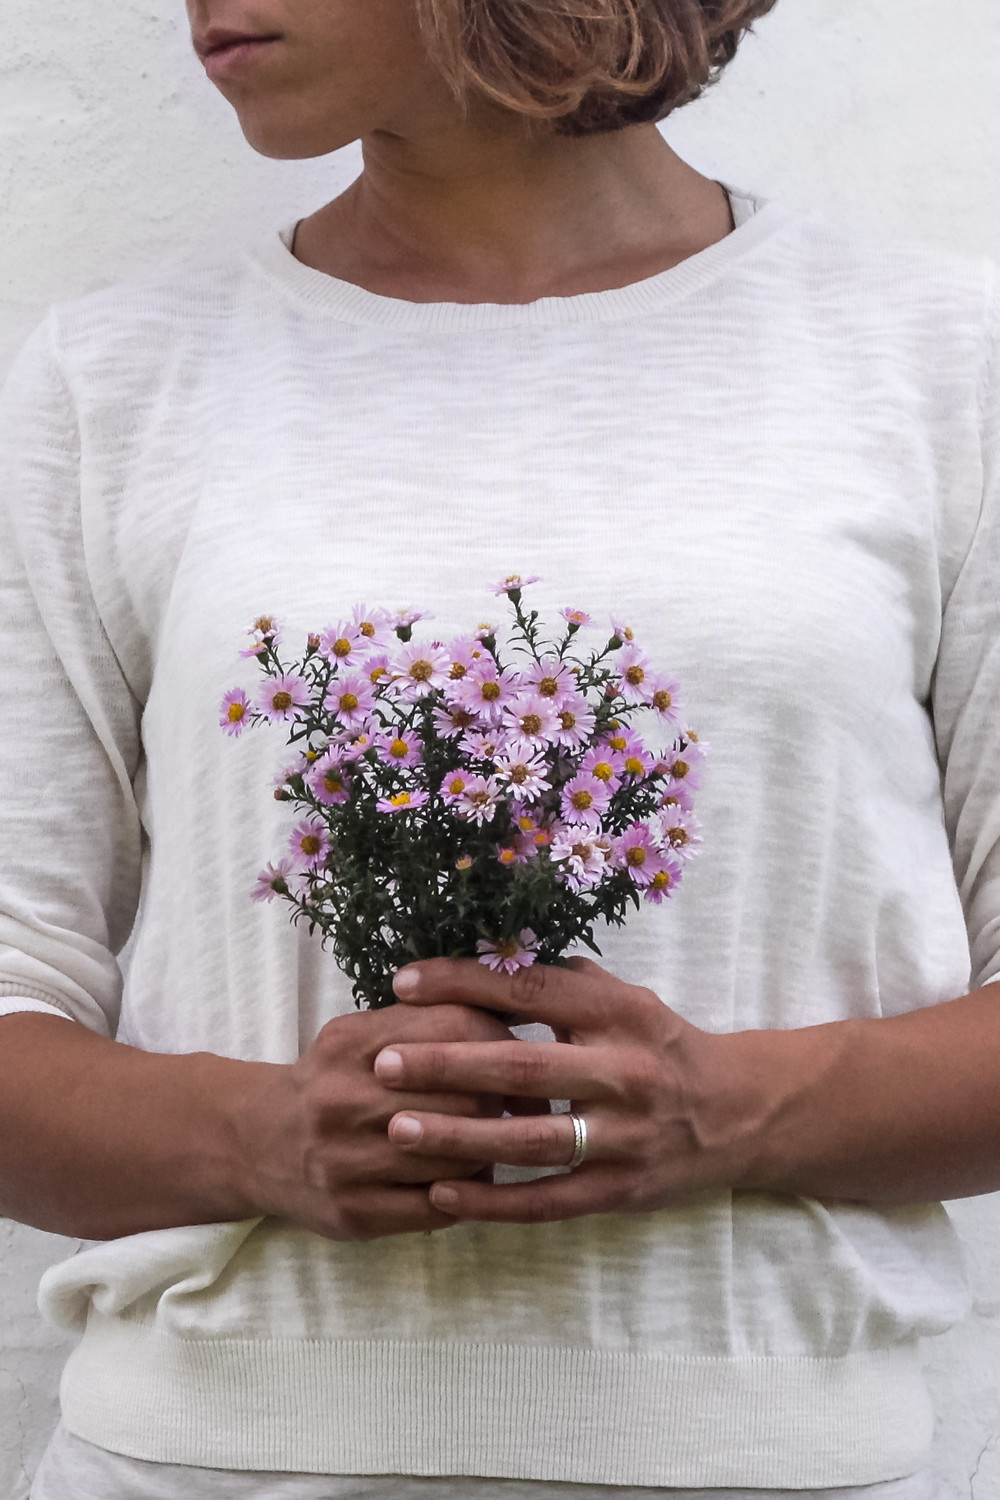 African American with Flowers who has a chronic illness